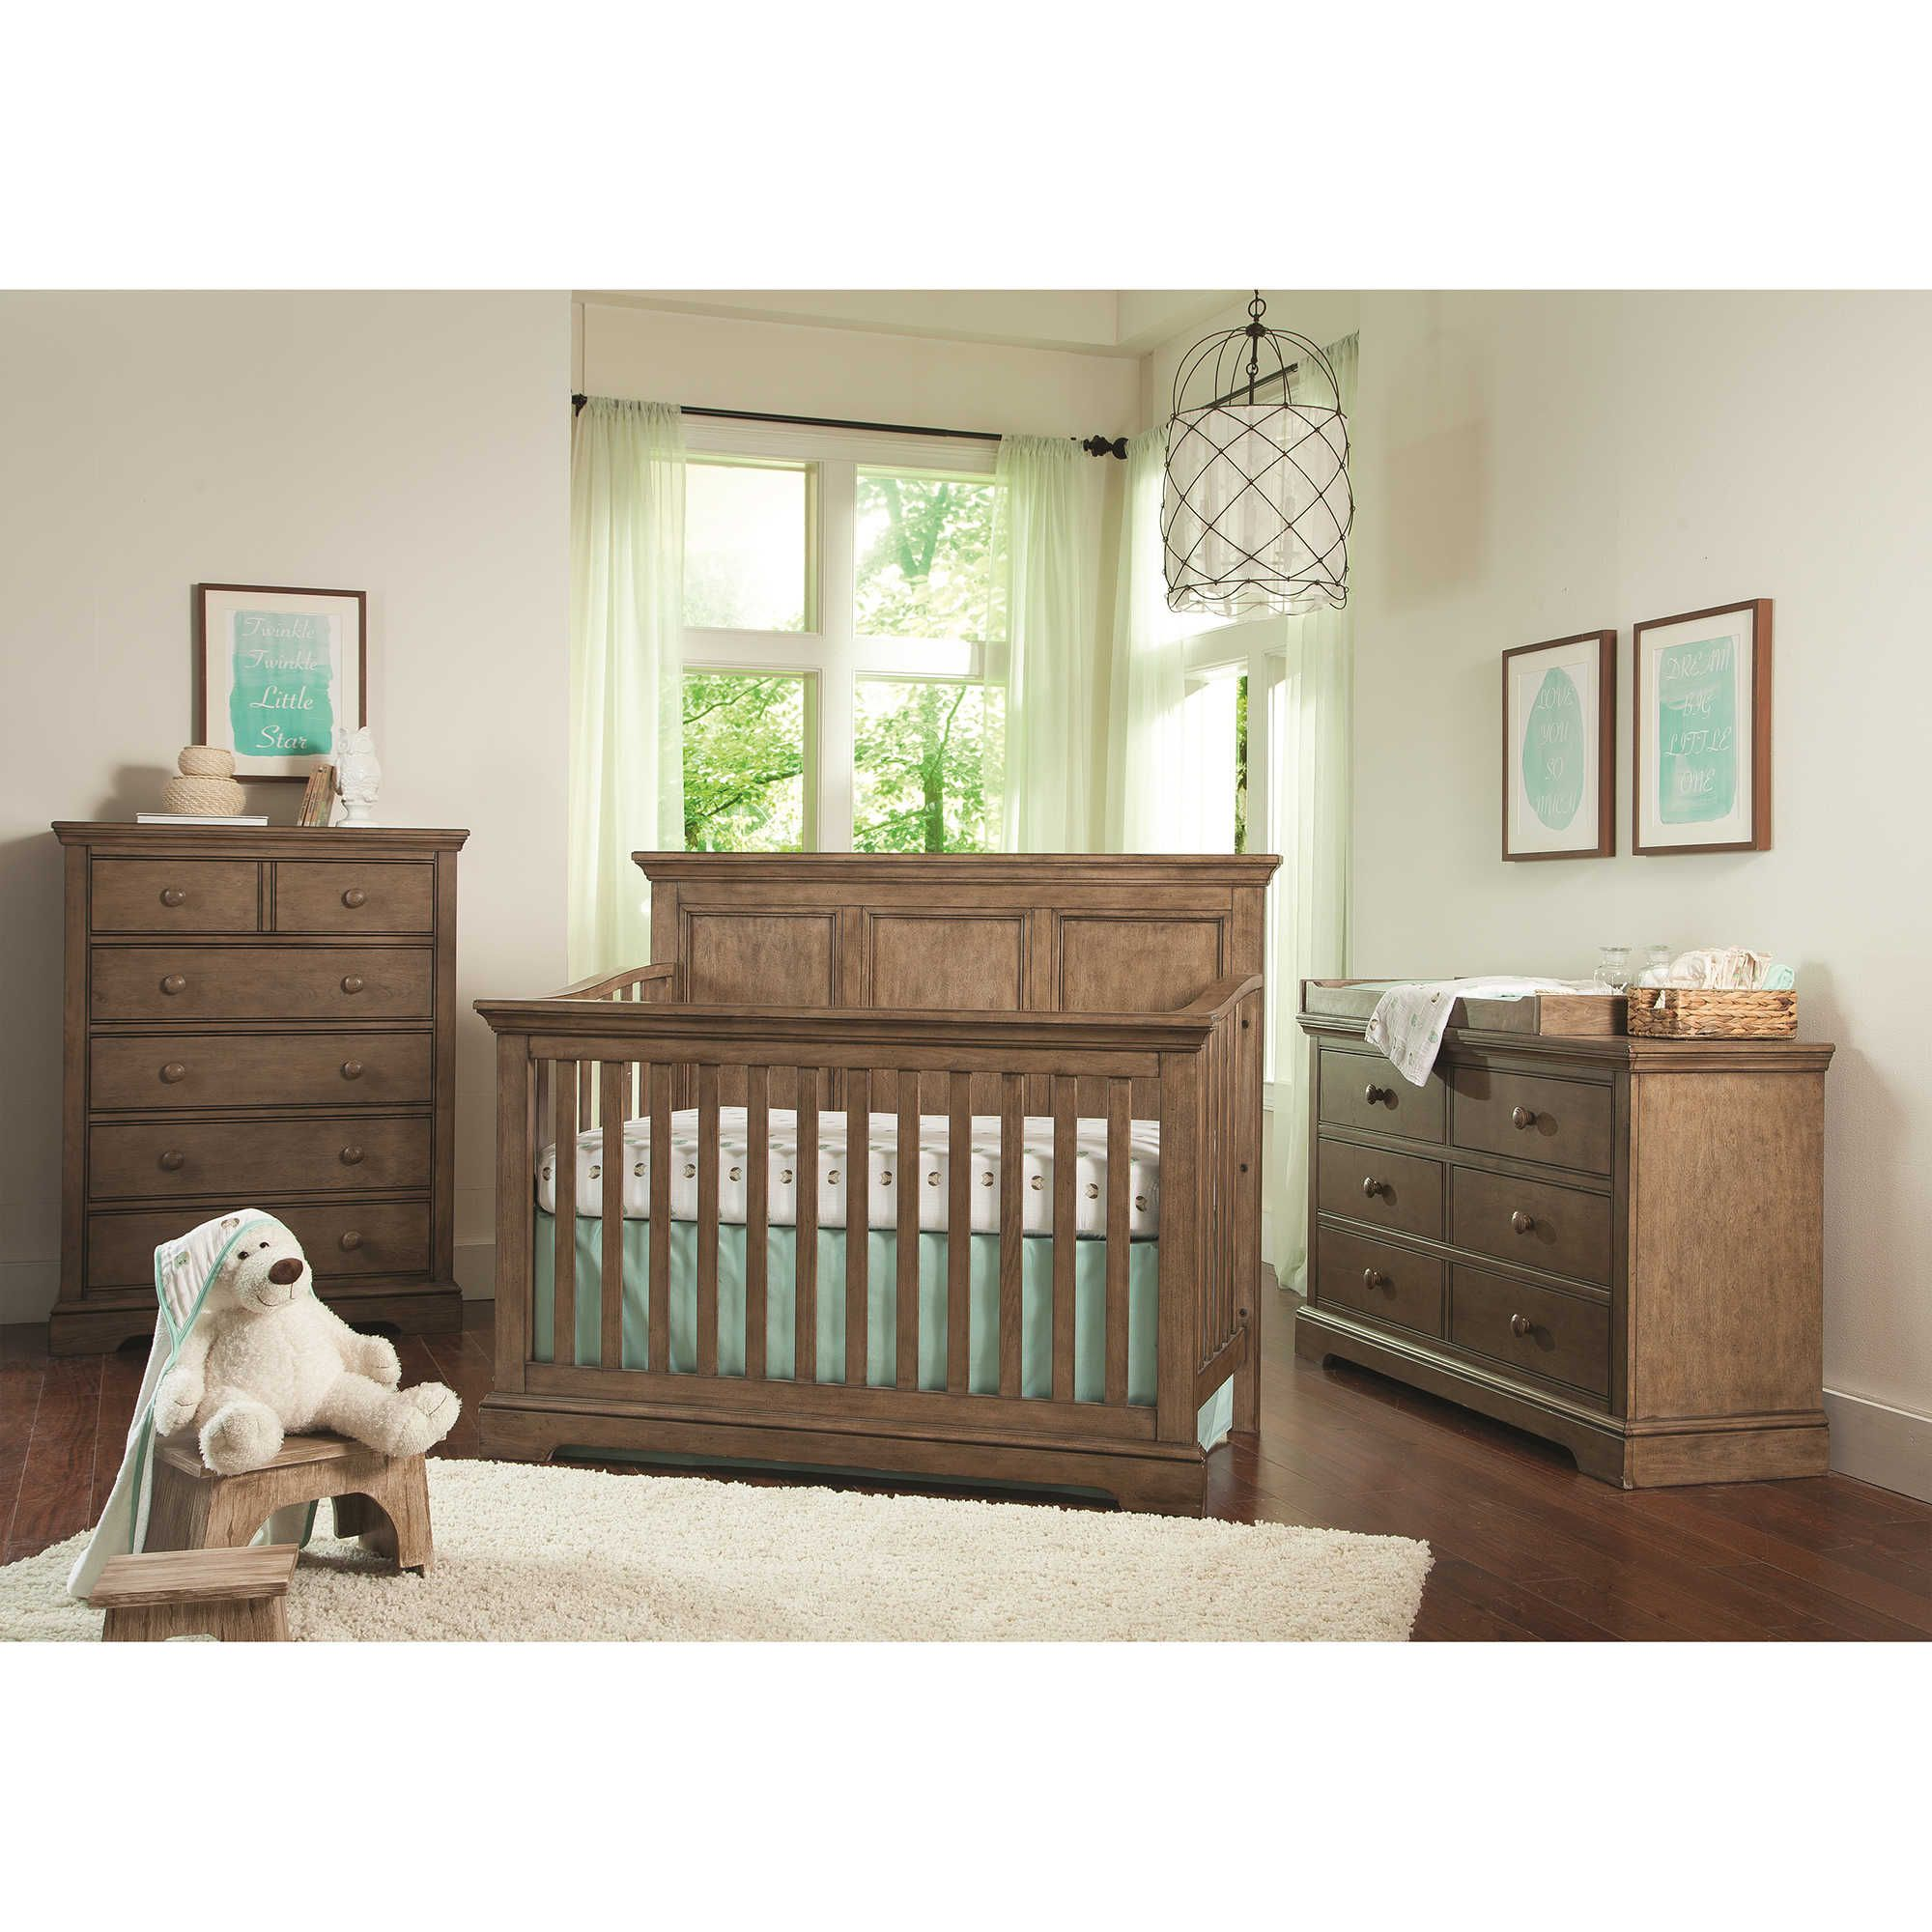 in furniture crib nursery drawers hmpt canyon convertible soho silo db cribs agl gray baby hampton with cg